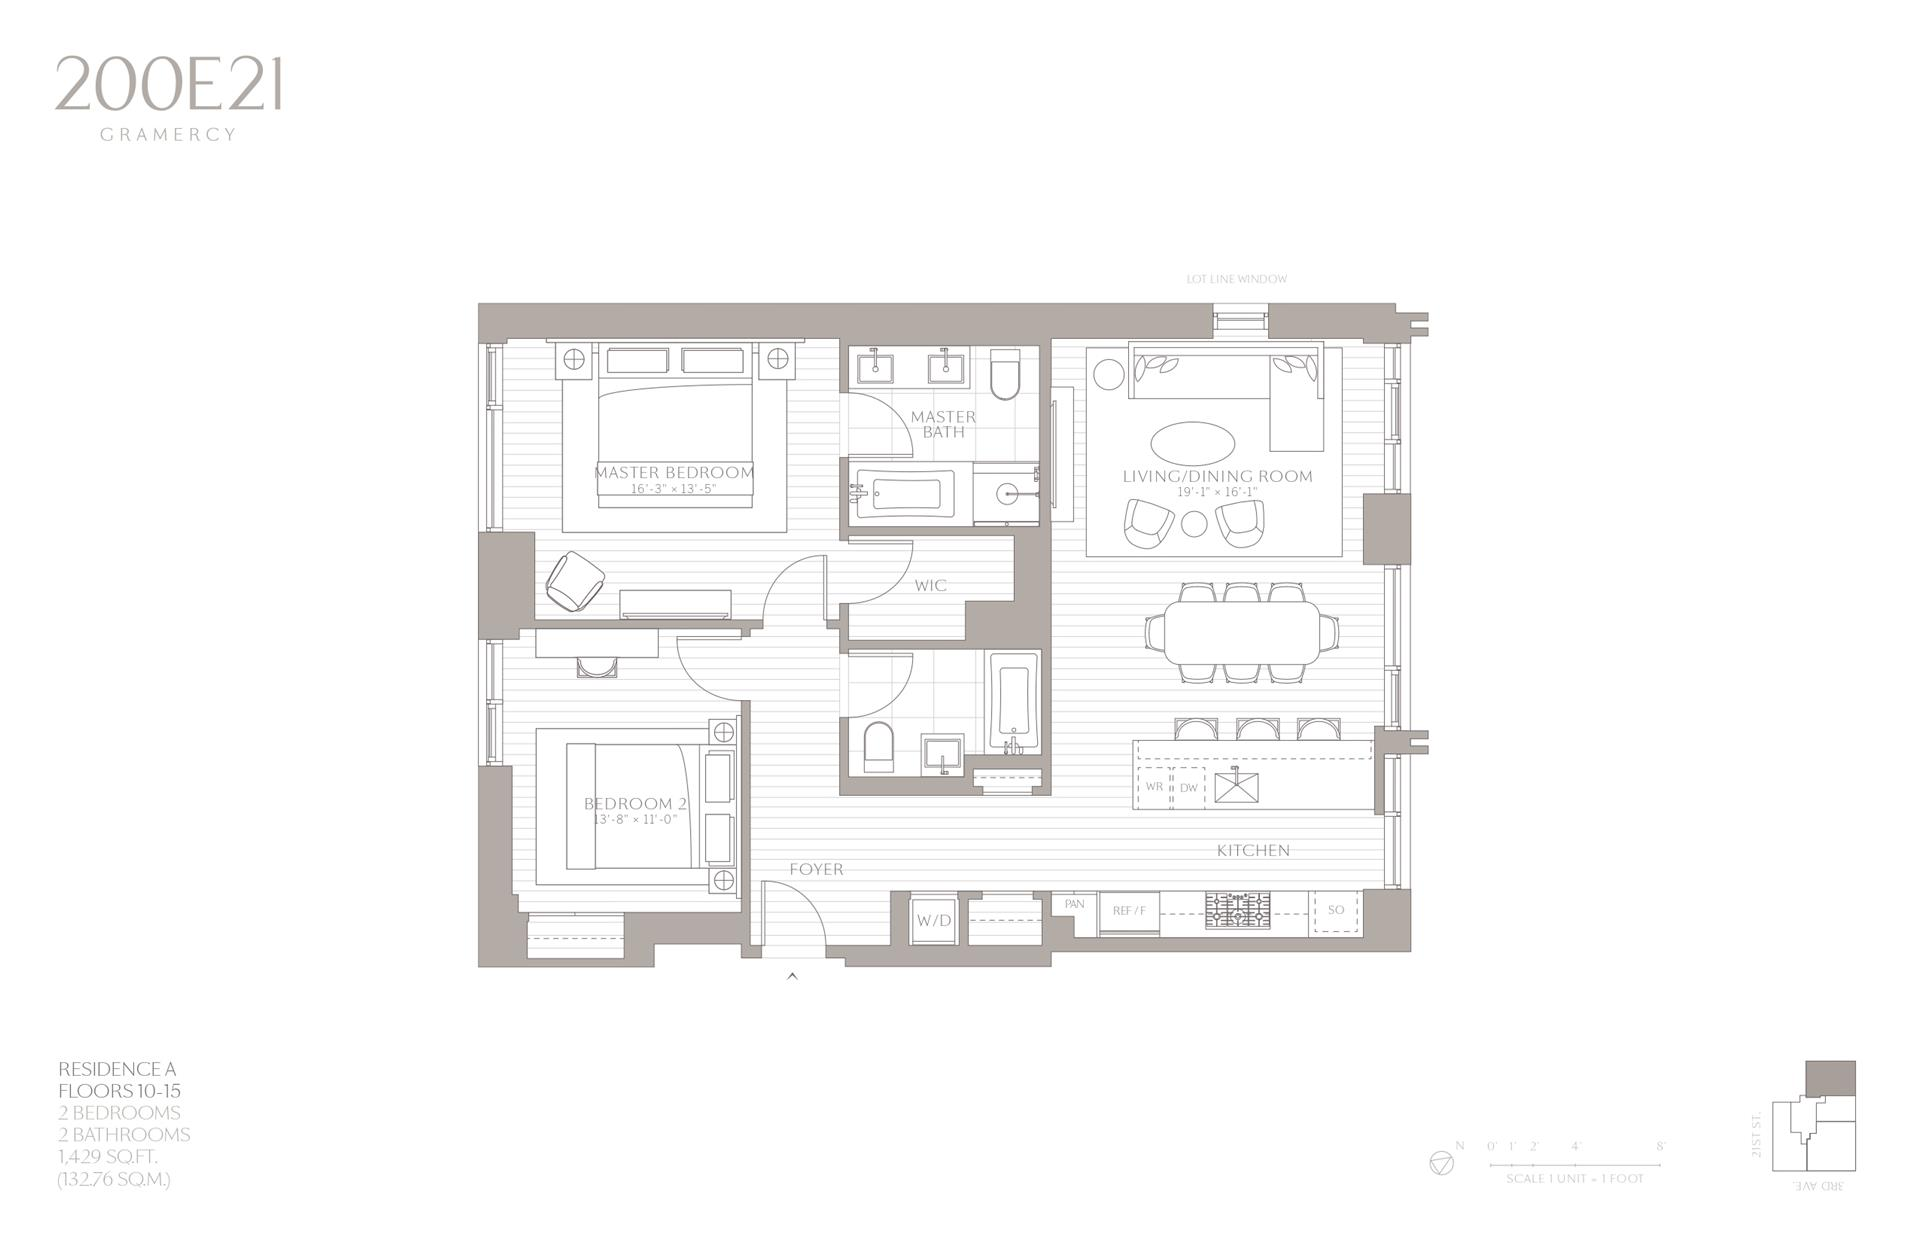 Floor plan of 200 East 21st Street, 10A - Gramercy - Union Square, New York